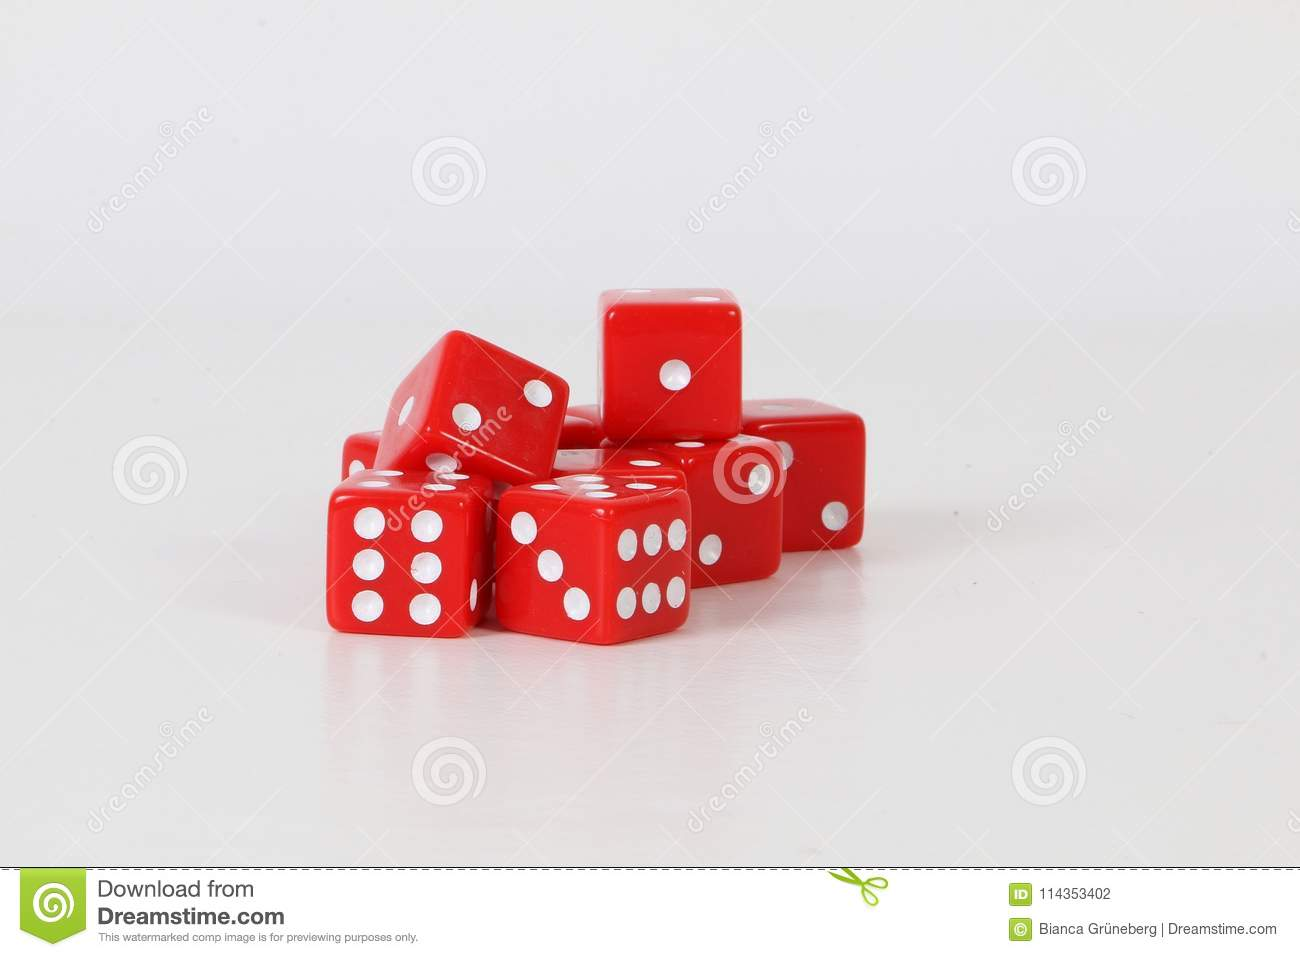 A heap of red dices